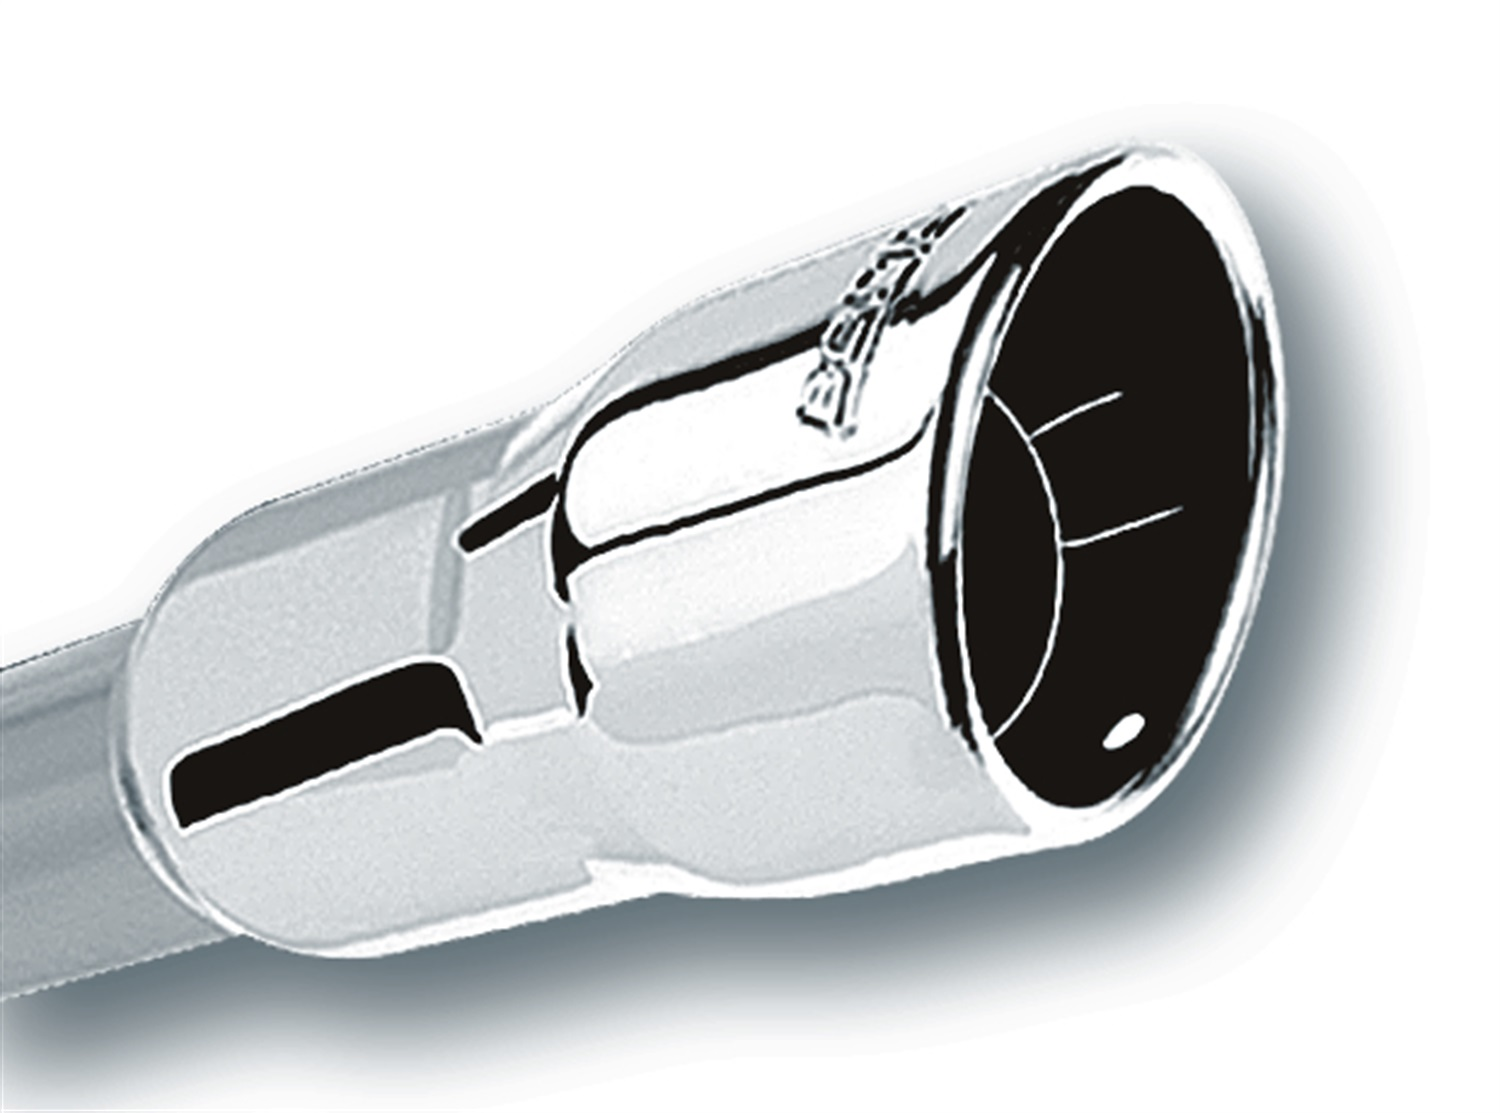 Borla Exhaust Tail Pipe Tip (20251)